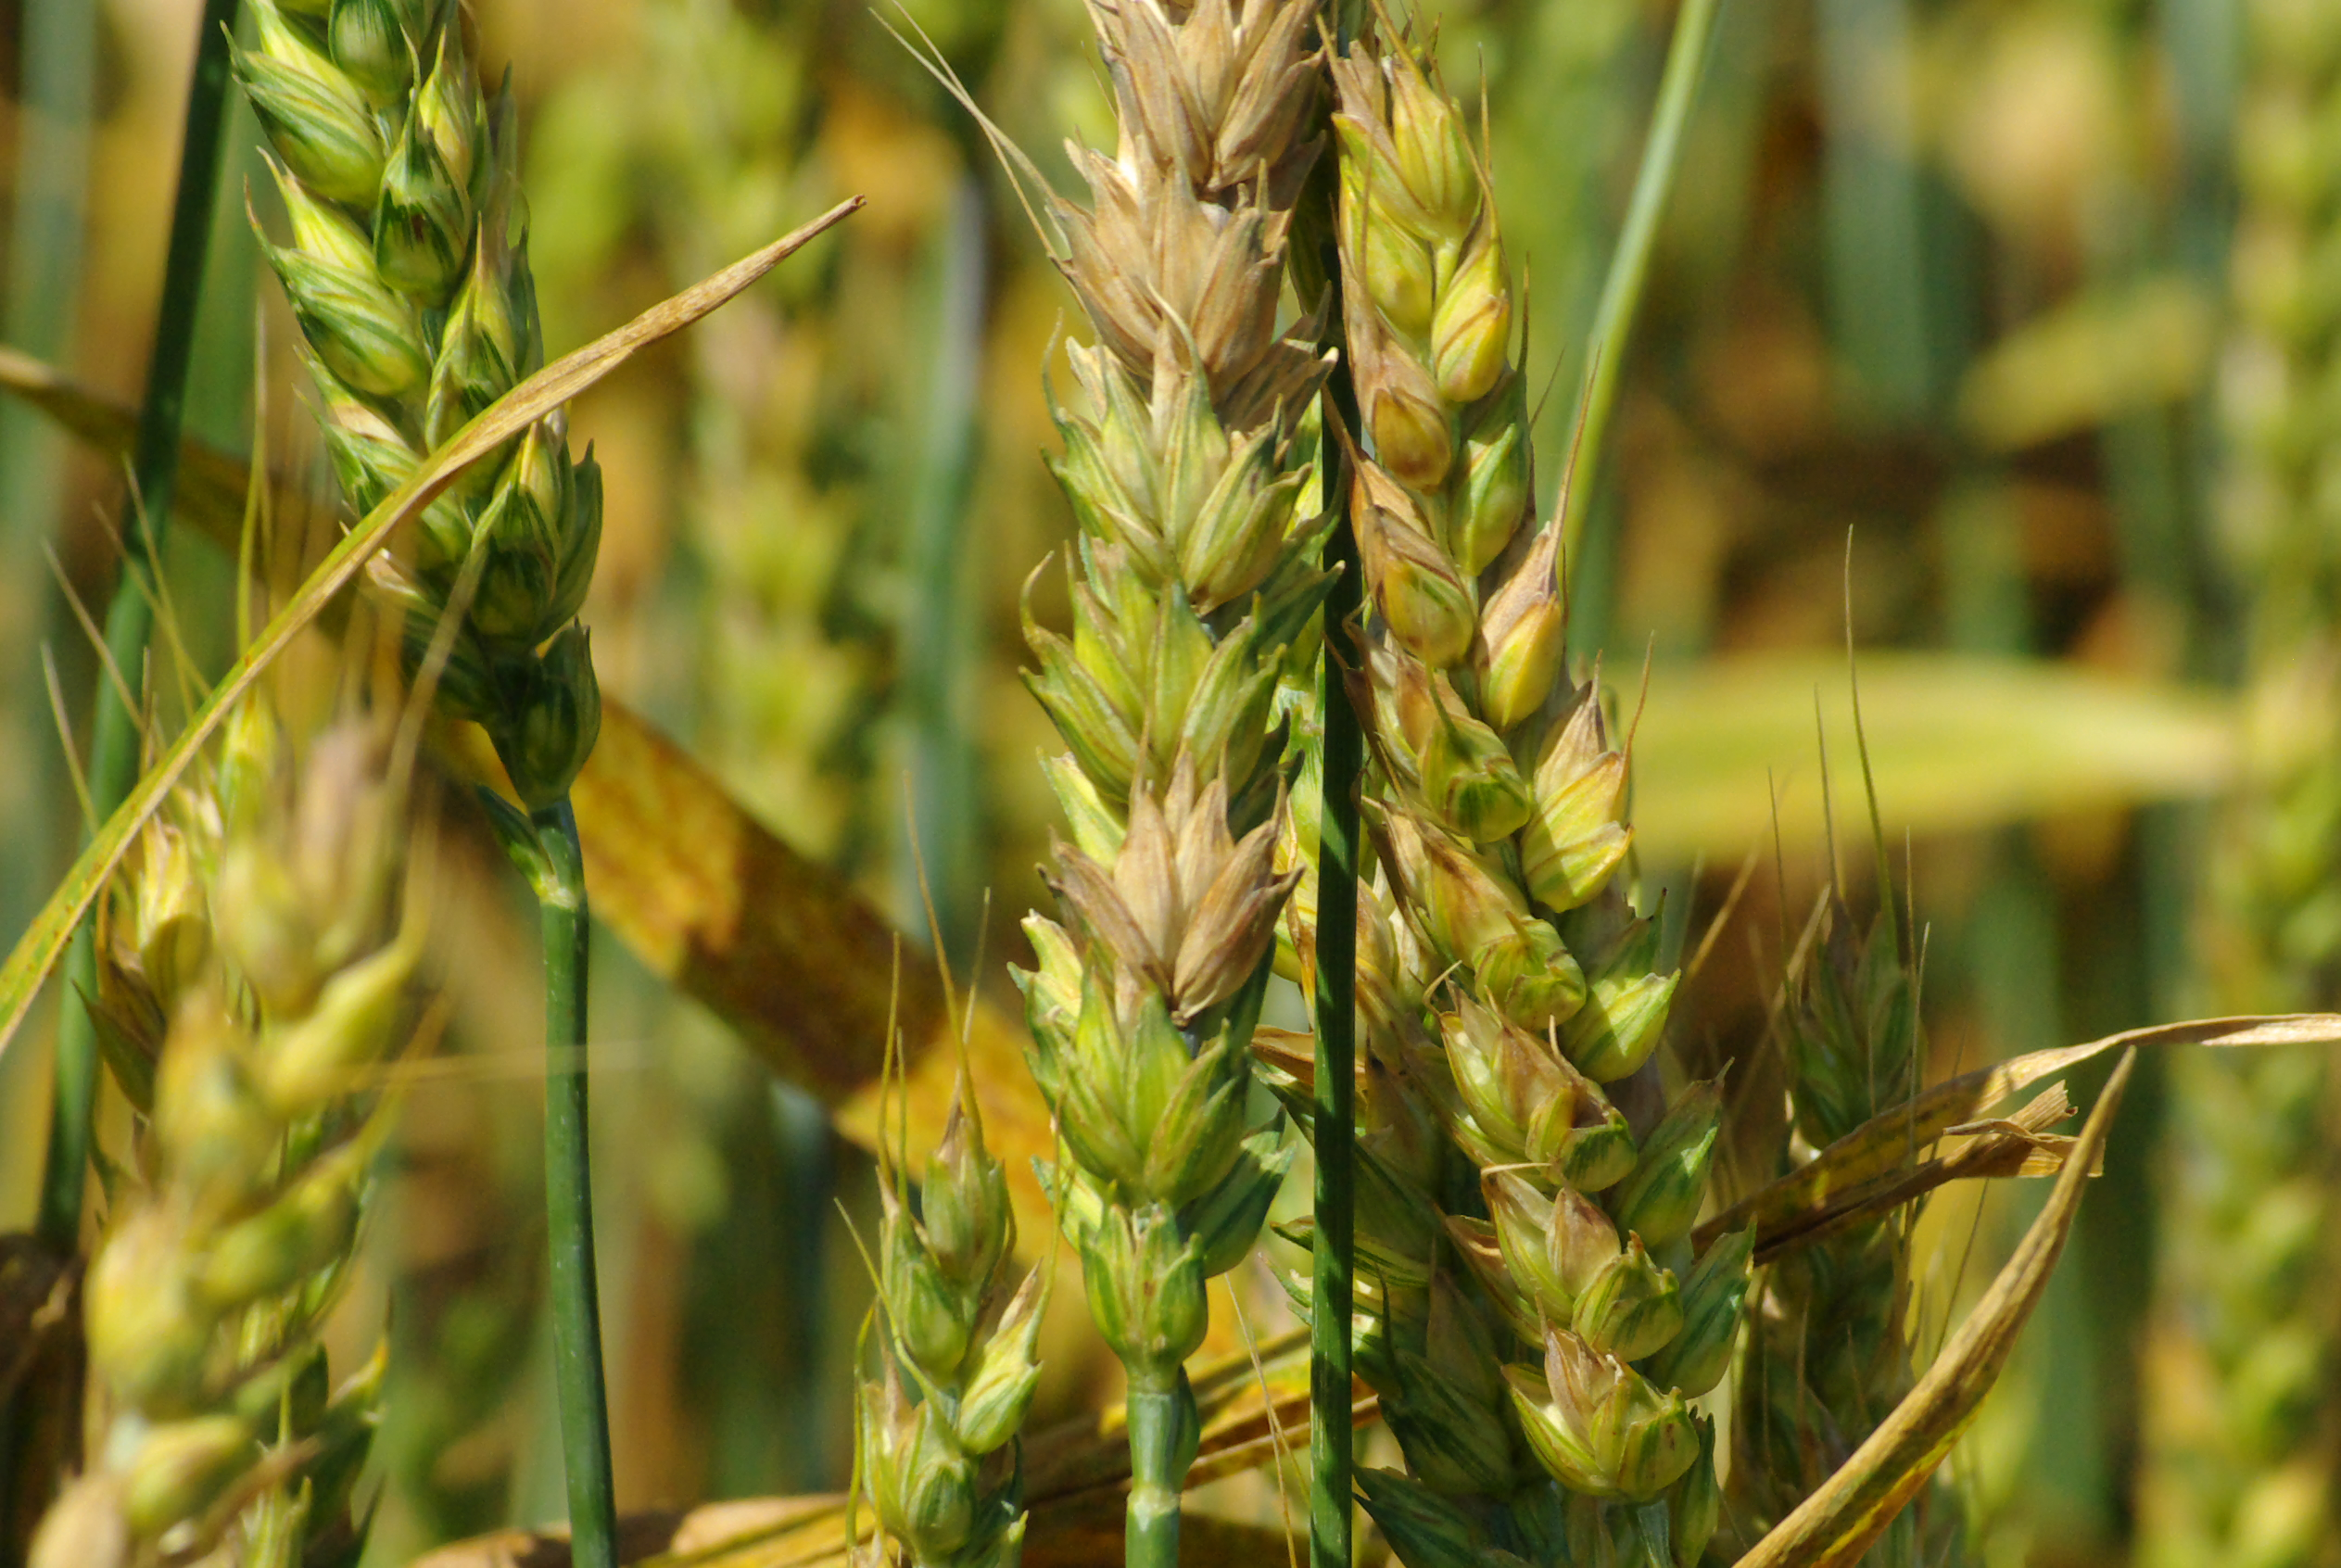 Fusarium head blight reduces yield and mycotoxins are produced.